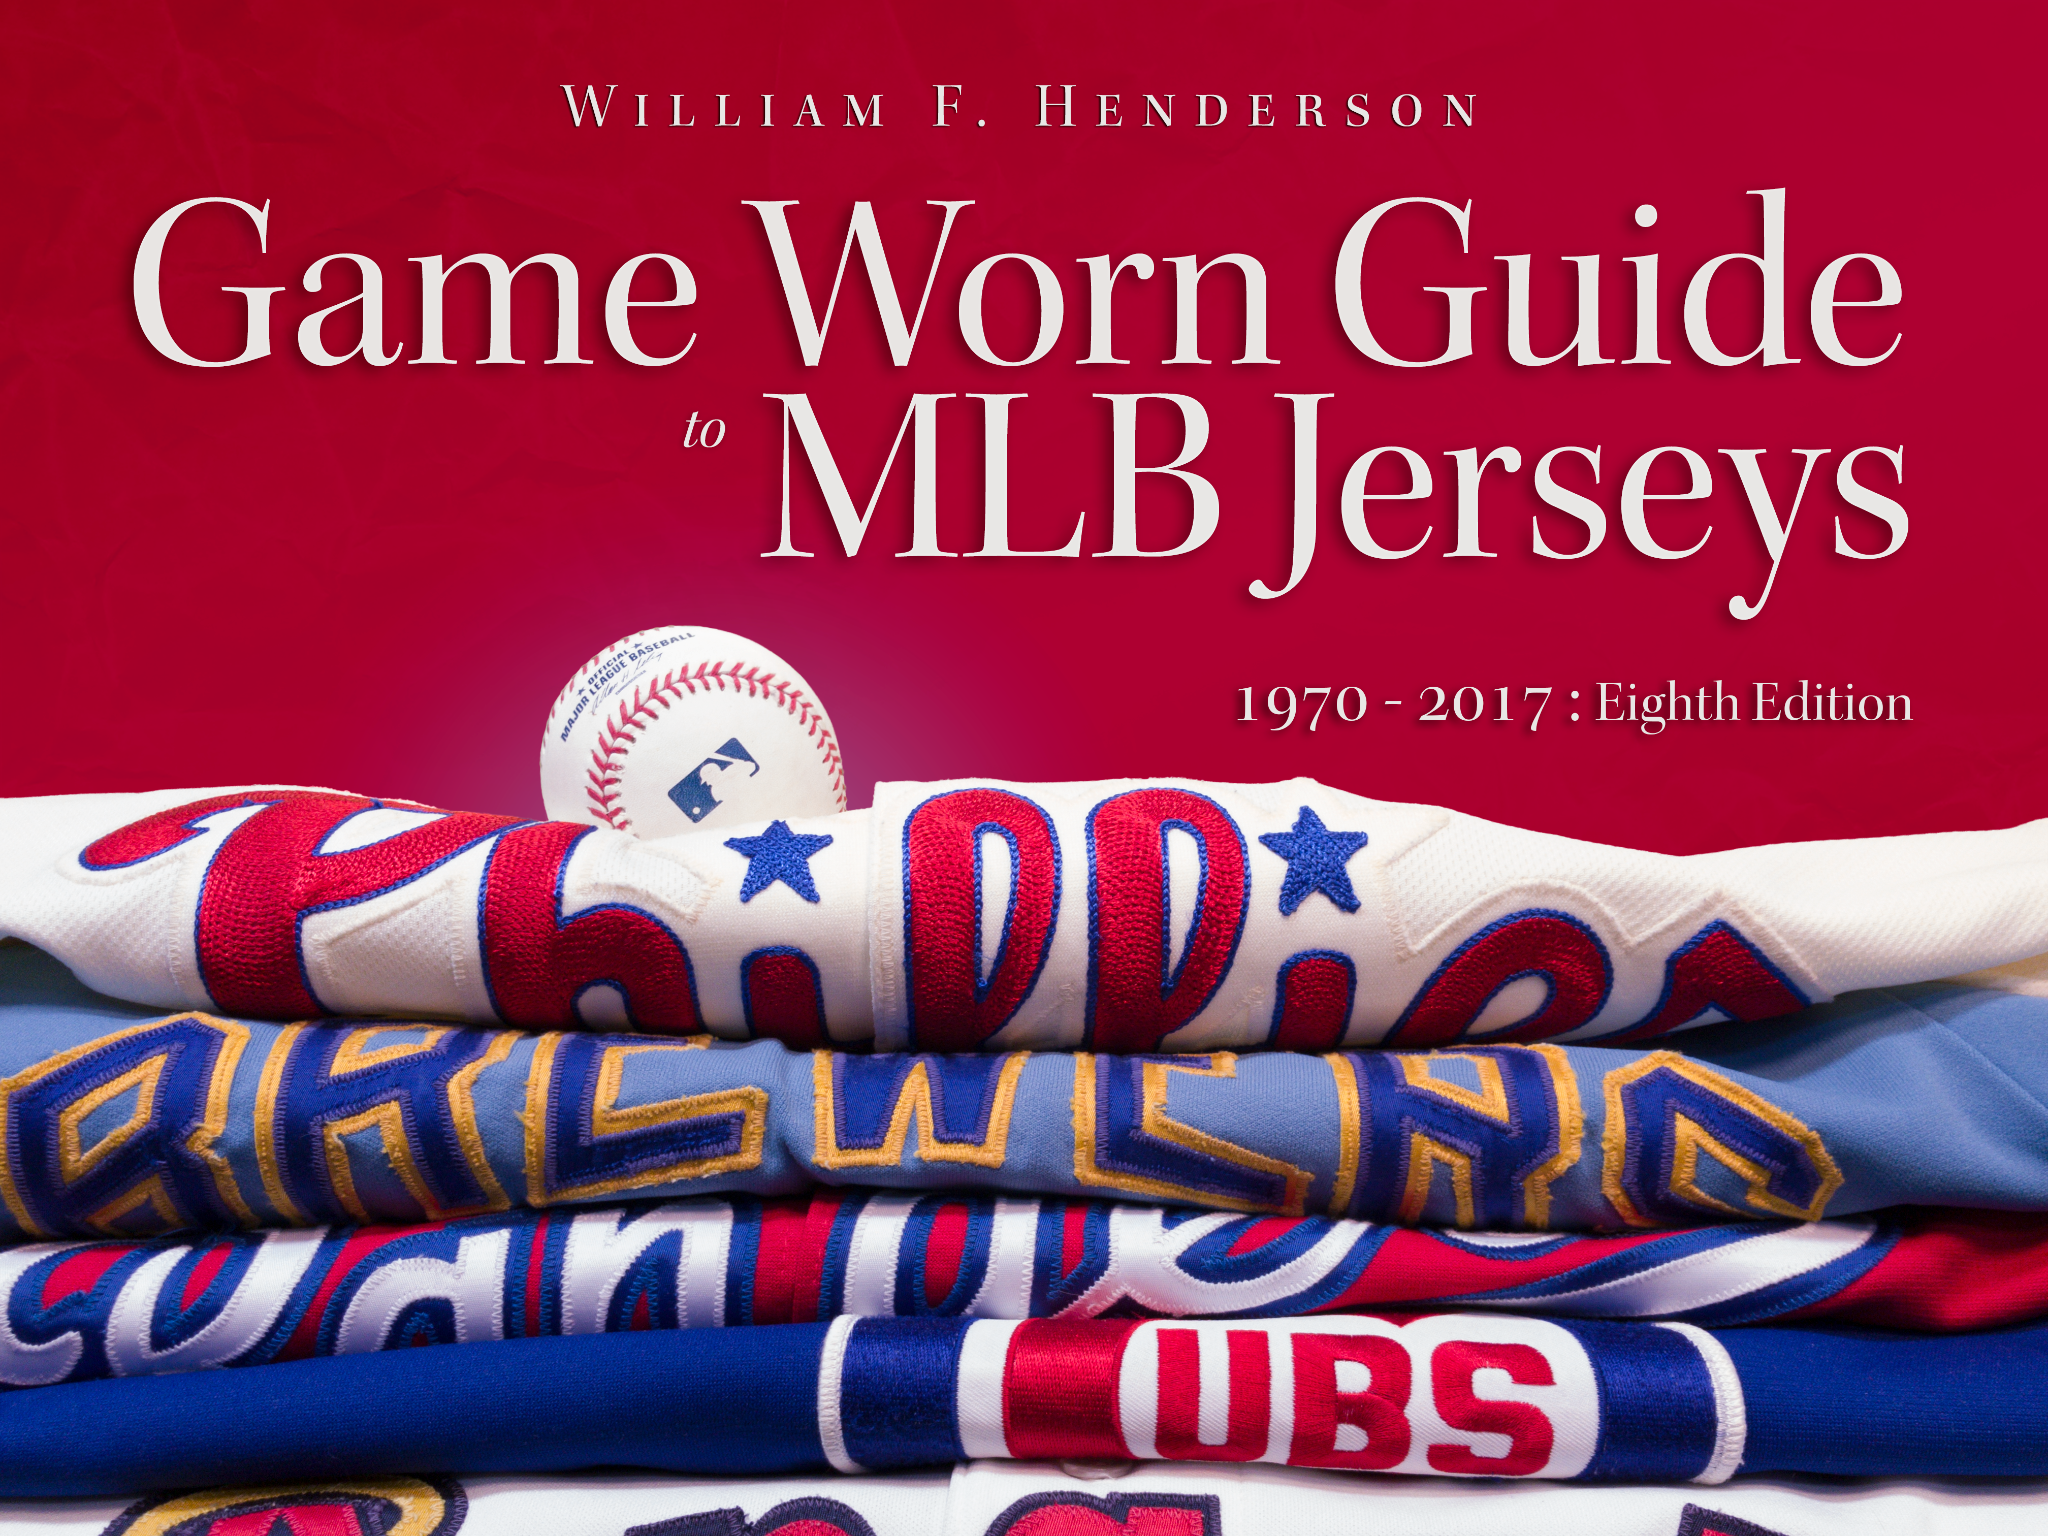 Game Worn Guide to MLB Jerseys 1970-2017 Eighth Edition